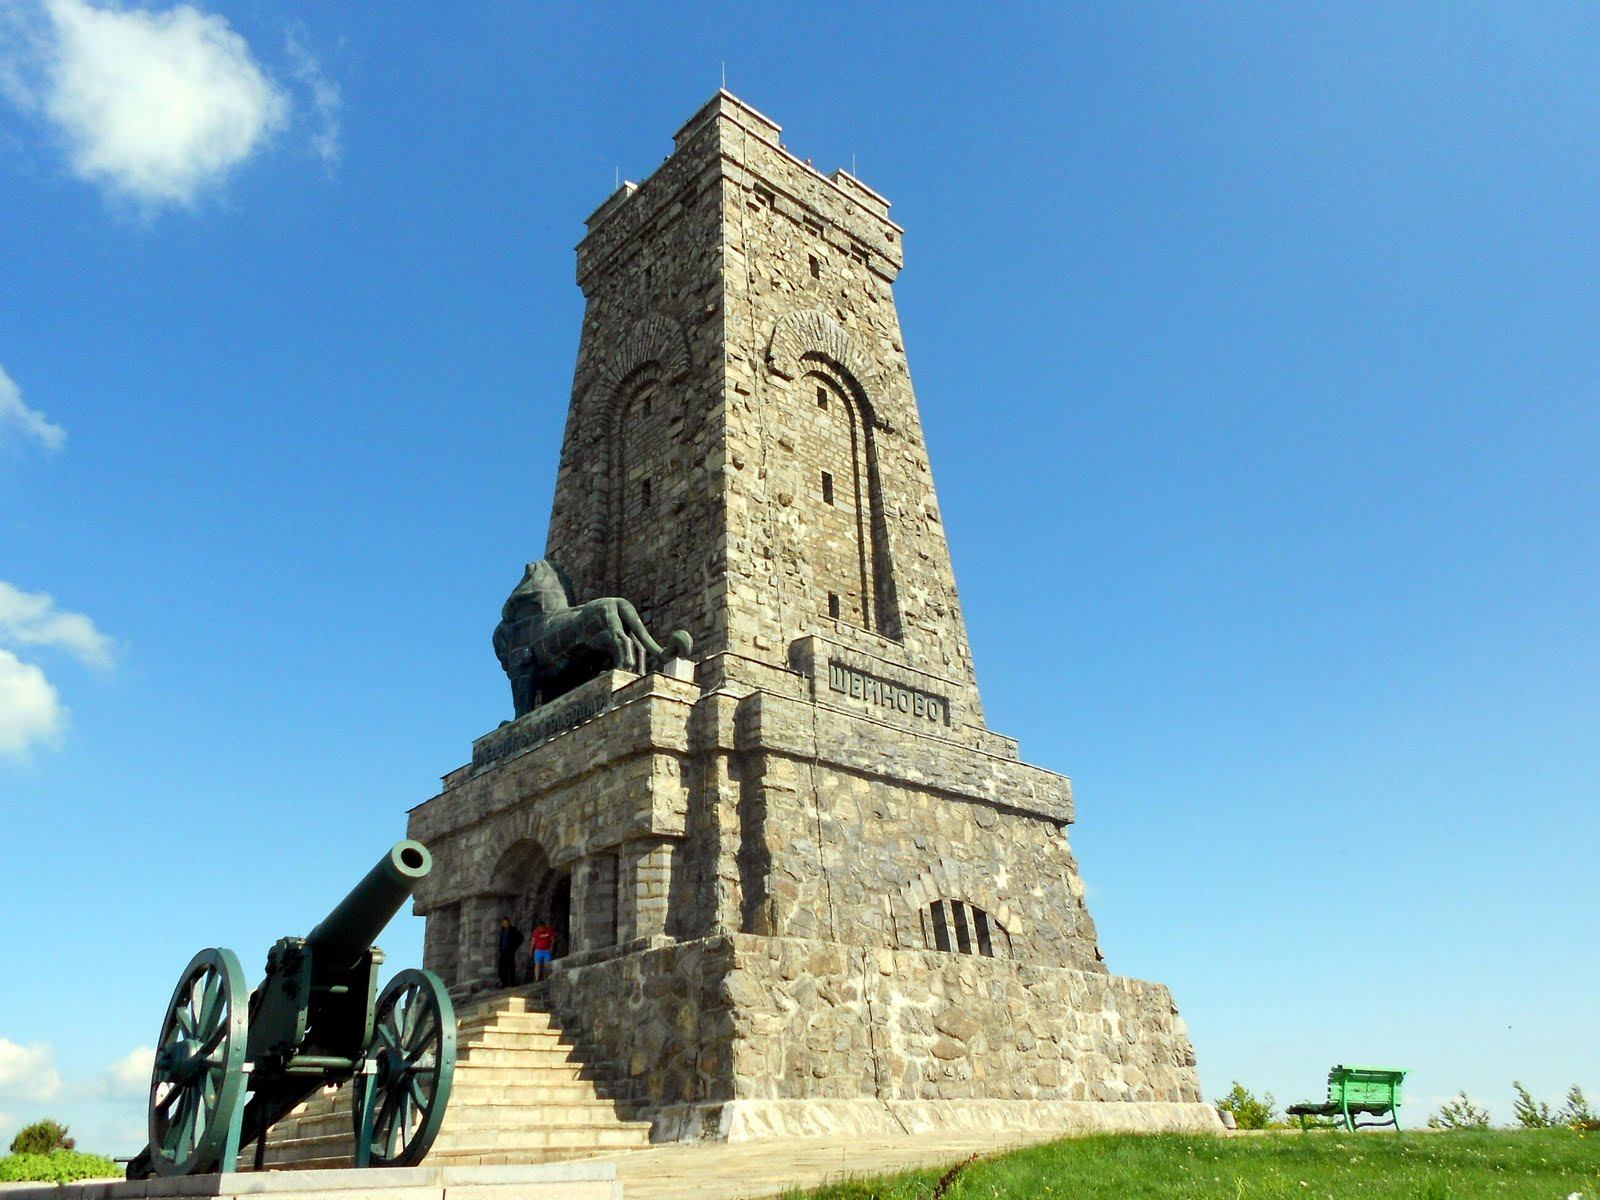 Shipka_memorial_stone-of-Russian-Turkish-war-and-liberation-of-Bulgaria